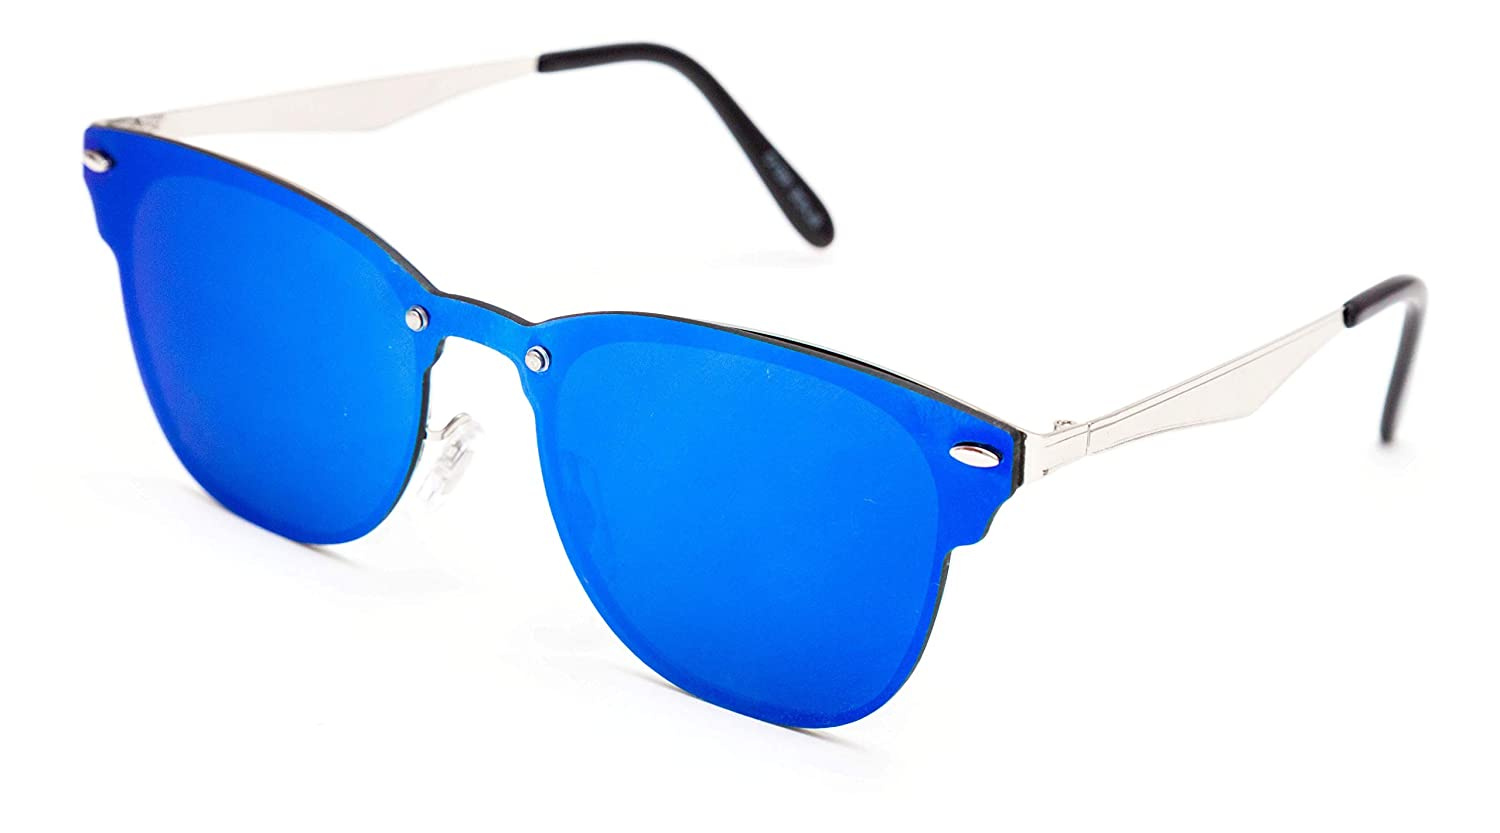 b3f746bc3e0d THEWHOOP UniBody Lens Mirror Goggles Sunglasses for Men and Women (Blue  Gold)  Amazon.in  Clothing   Accessories